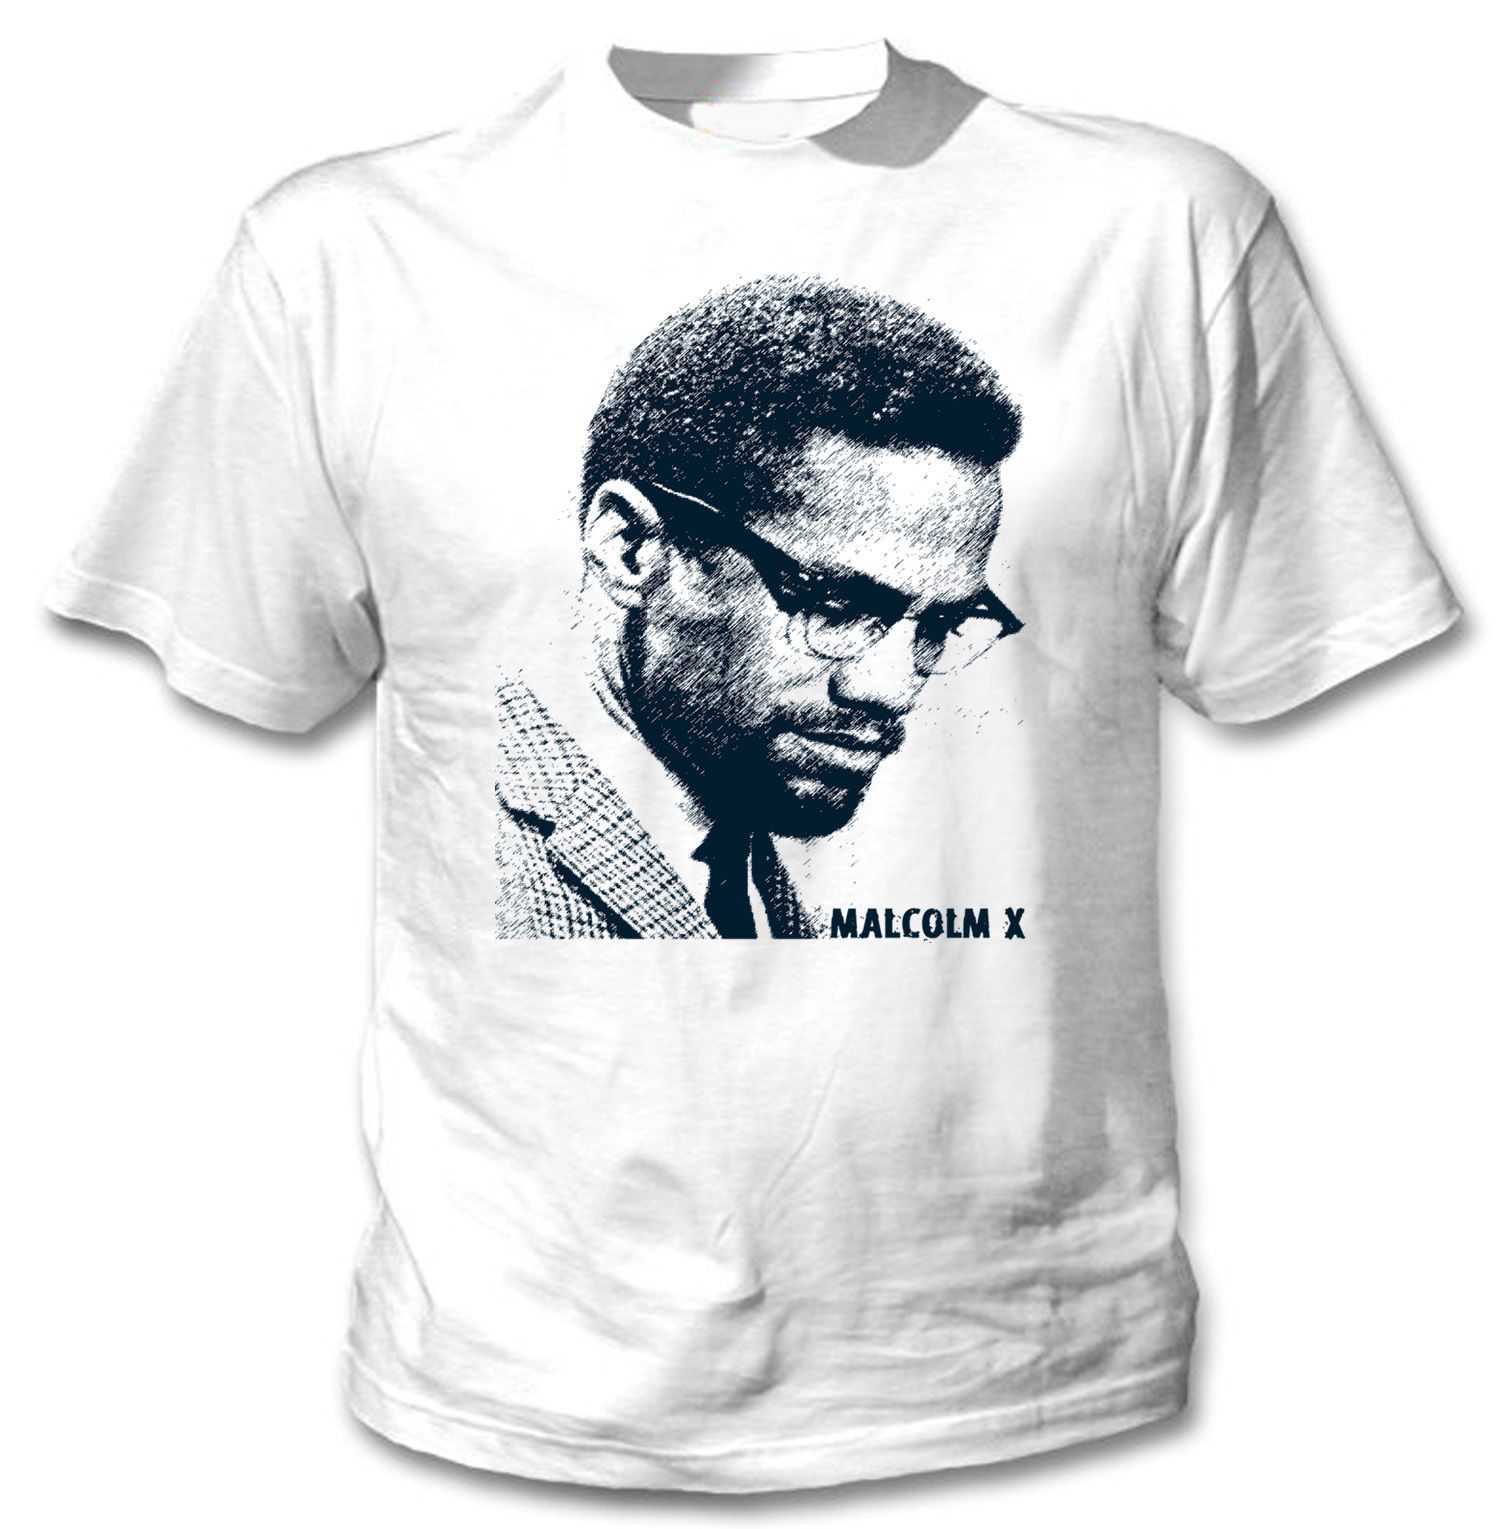 Primary image for MALCOLM X - NEW AMAZING GRAPHIC TSHIRT- S-M-L-XL-XXL